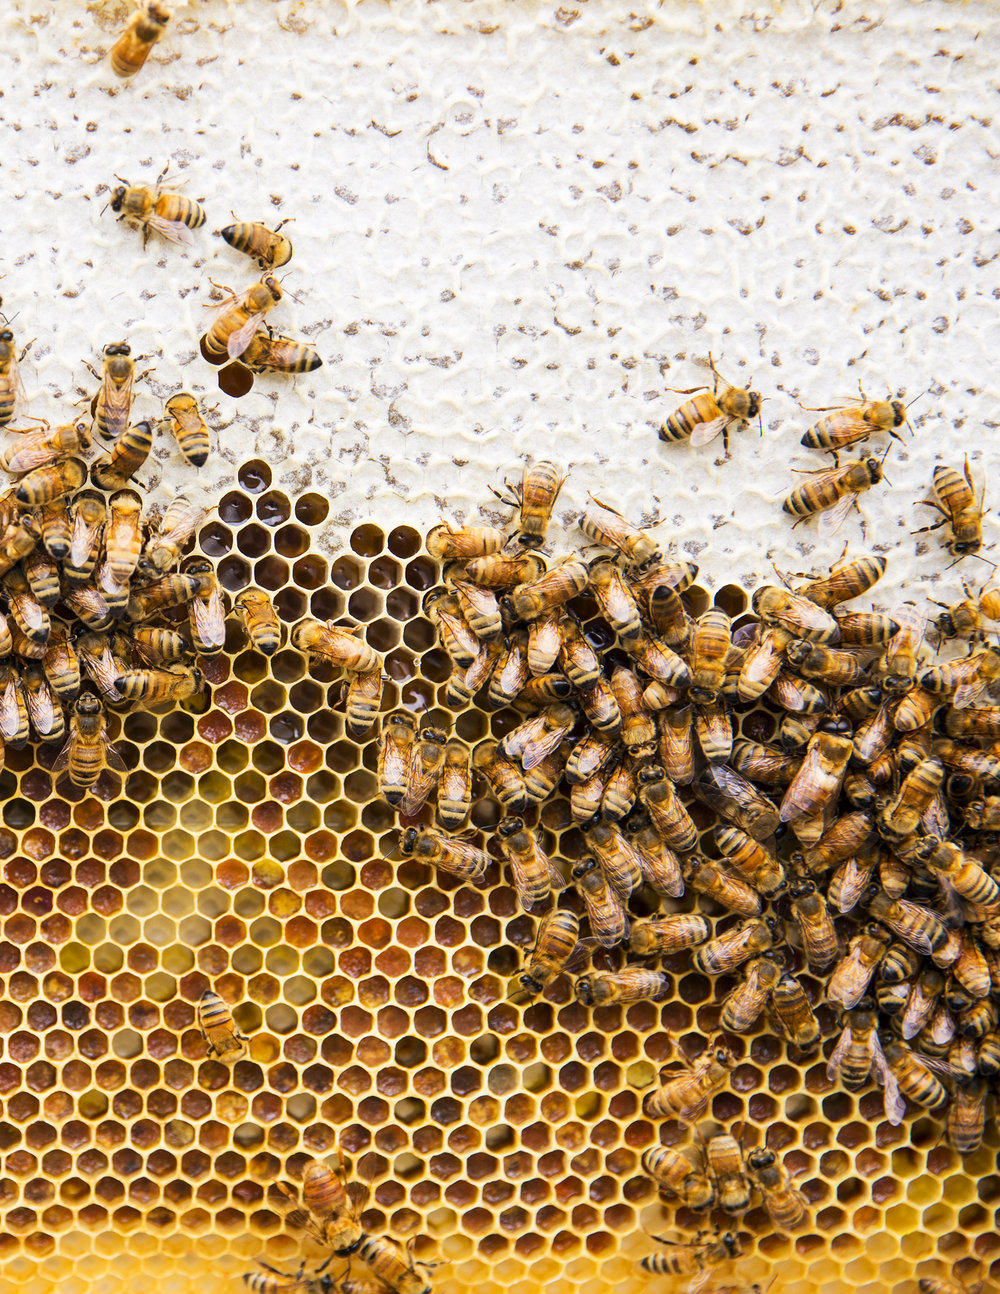 Burggraaf_Charity-Seattle_Food_Photographer-Beekeeping-Hive.jpg